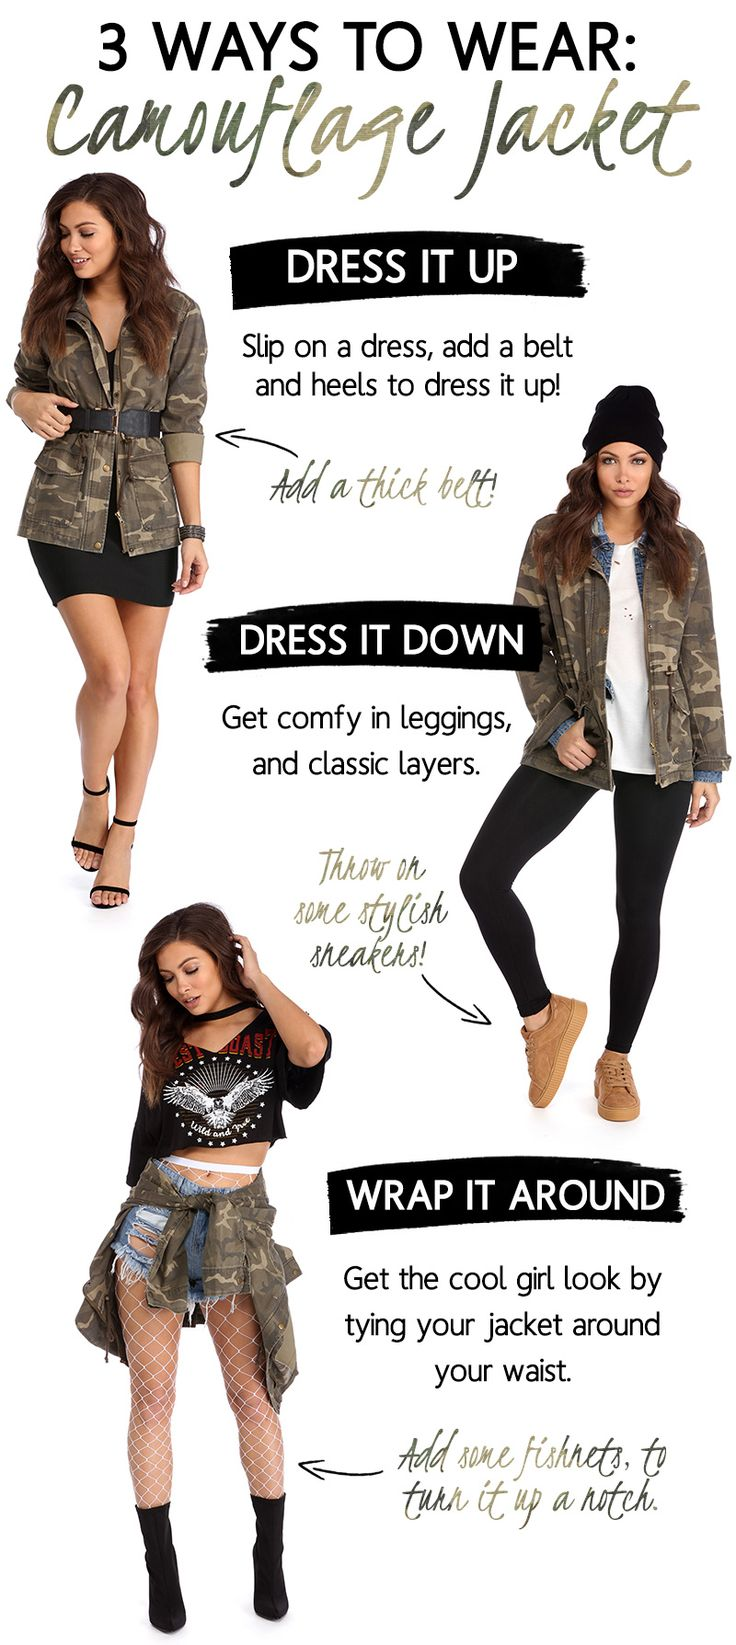 3 Way Thursday: Camouflage Jacket